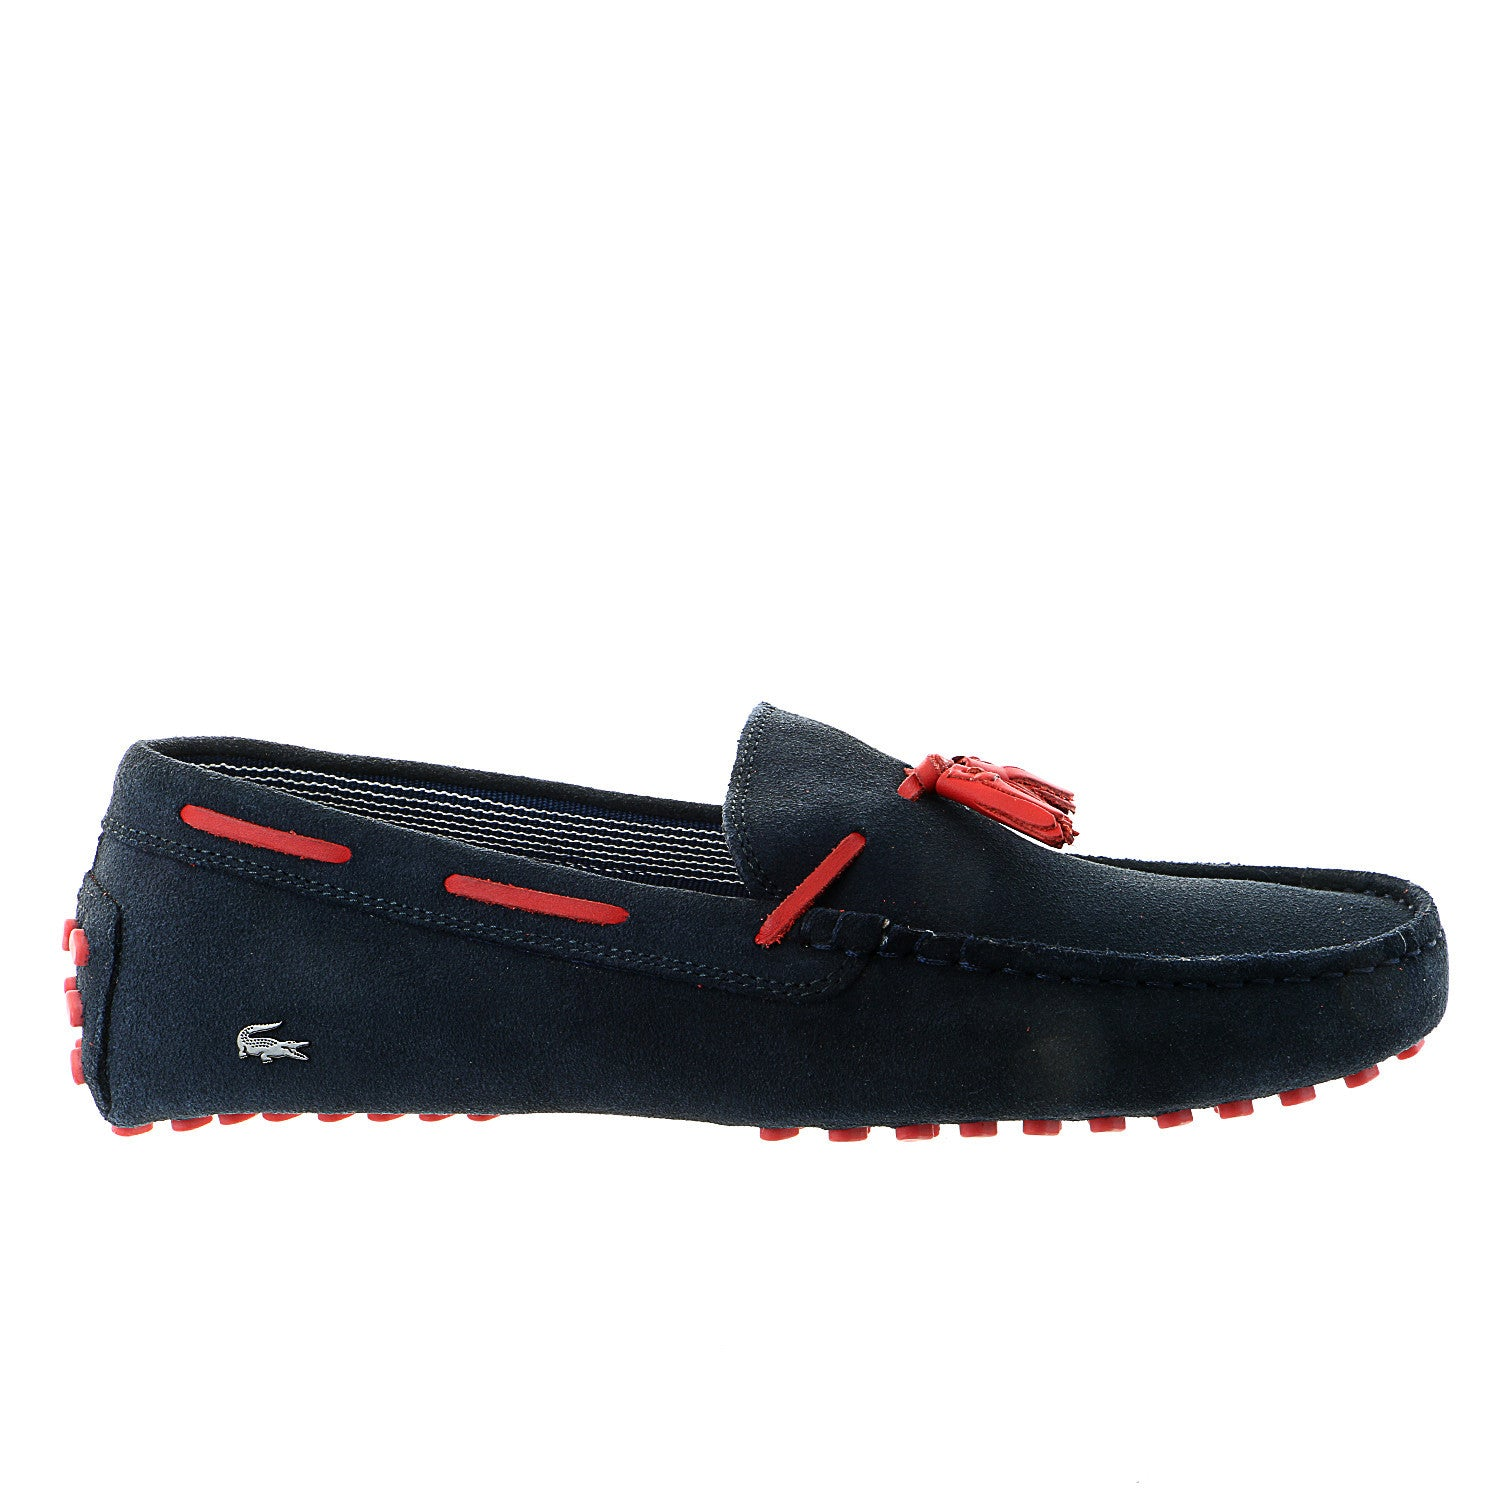 Lacoste Concours Tassle 7 Moccasin Driver Loafer Shoe - Navy - Mens